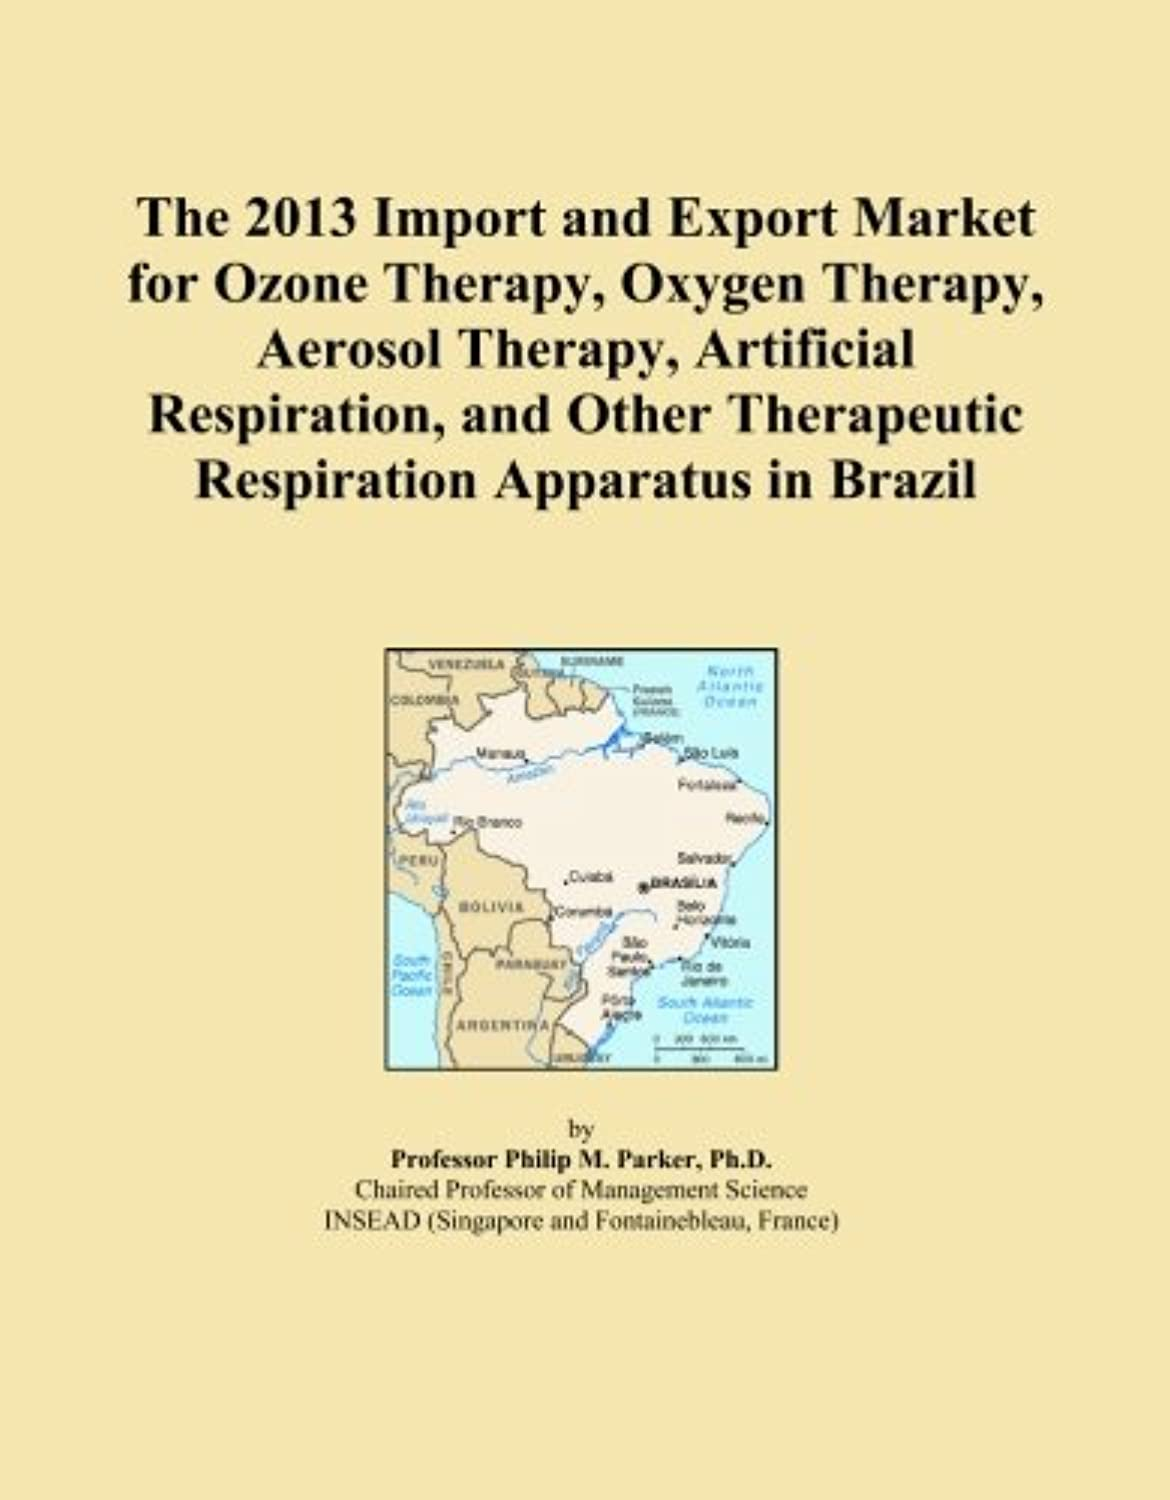 The 2013 Import and Export Market for Ozone Therapy, Oxygen Therapy, Aerosol Therapy, Artificial Respiration, and Other Therapeutic Respiration Apparatus in Brazil